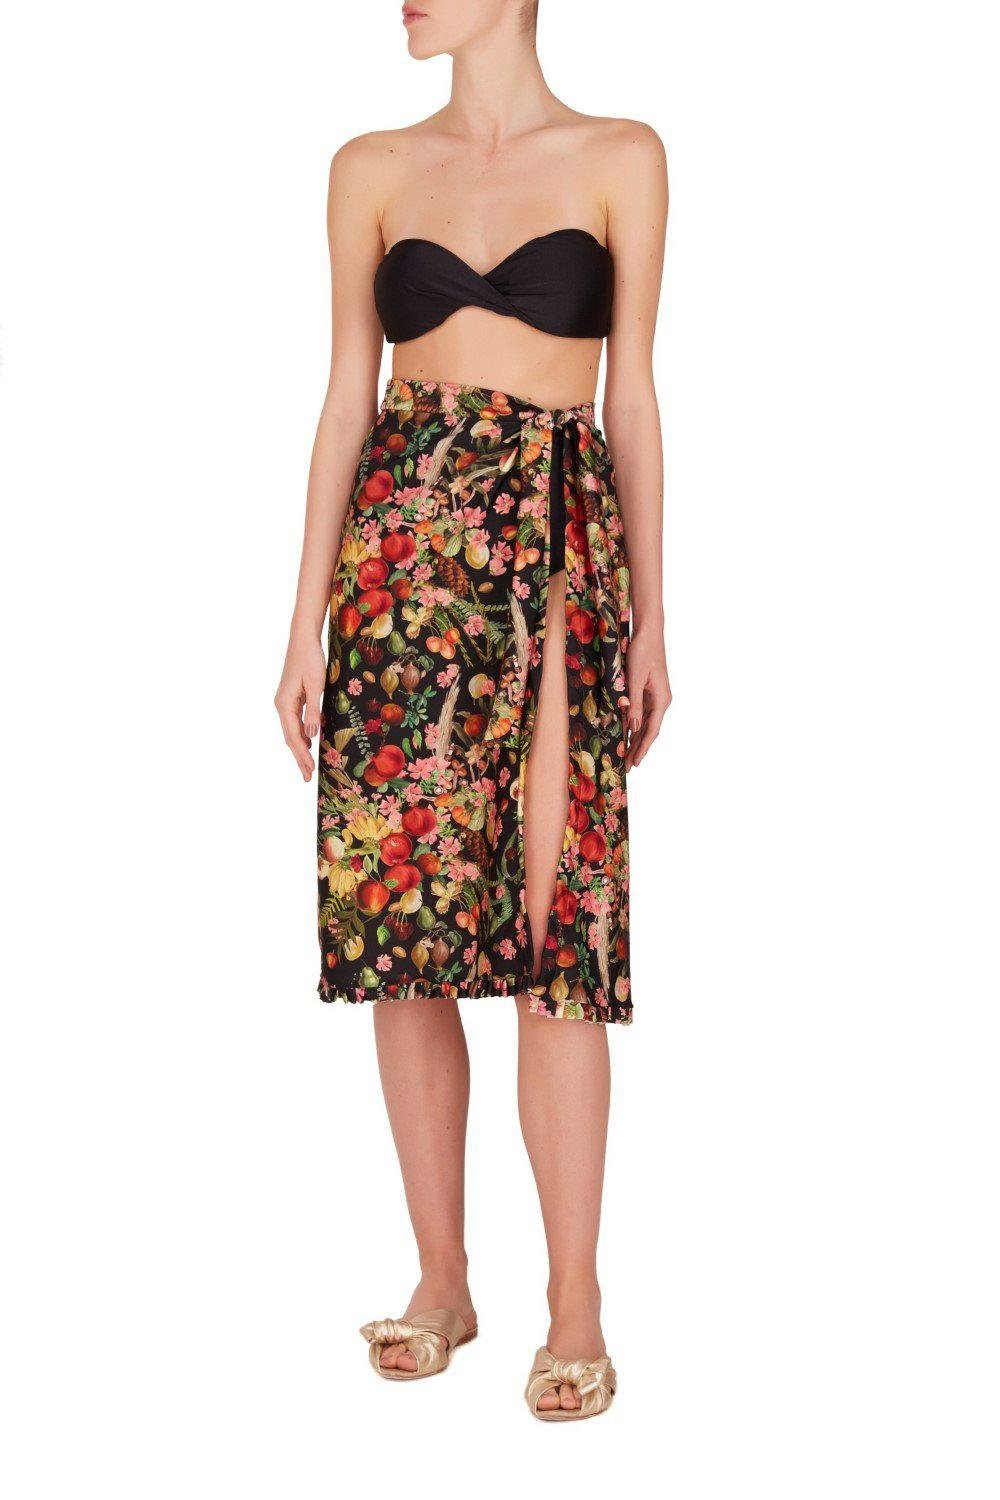 Fruits Exotiques Pareo Skirt with Frills 0